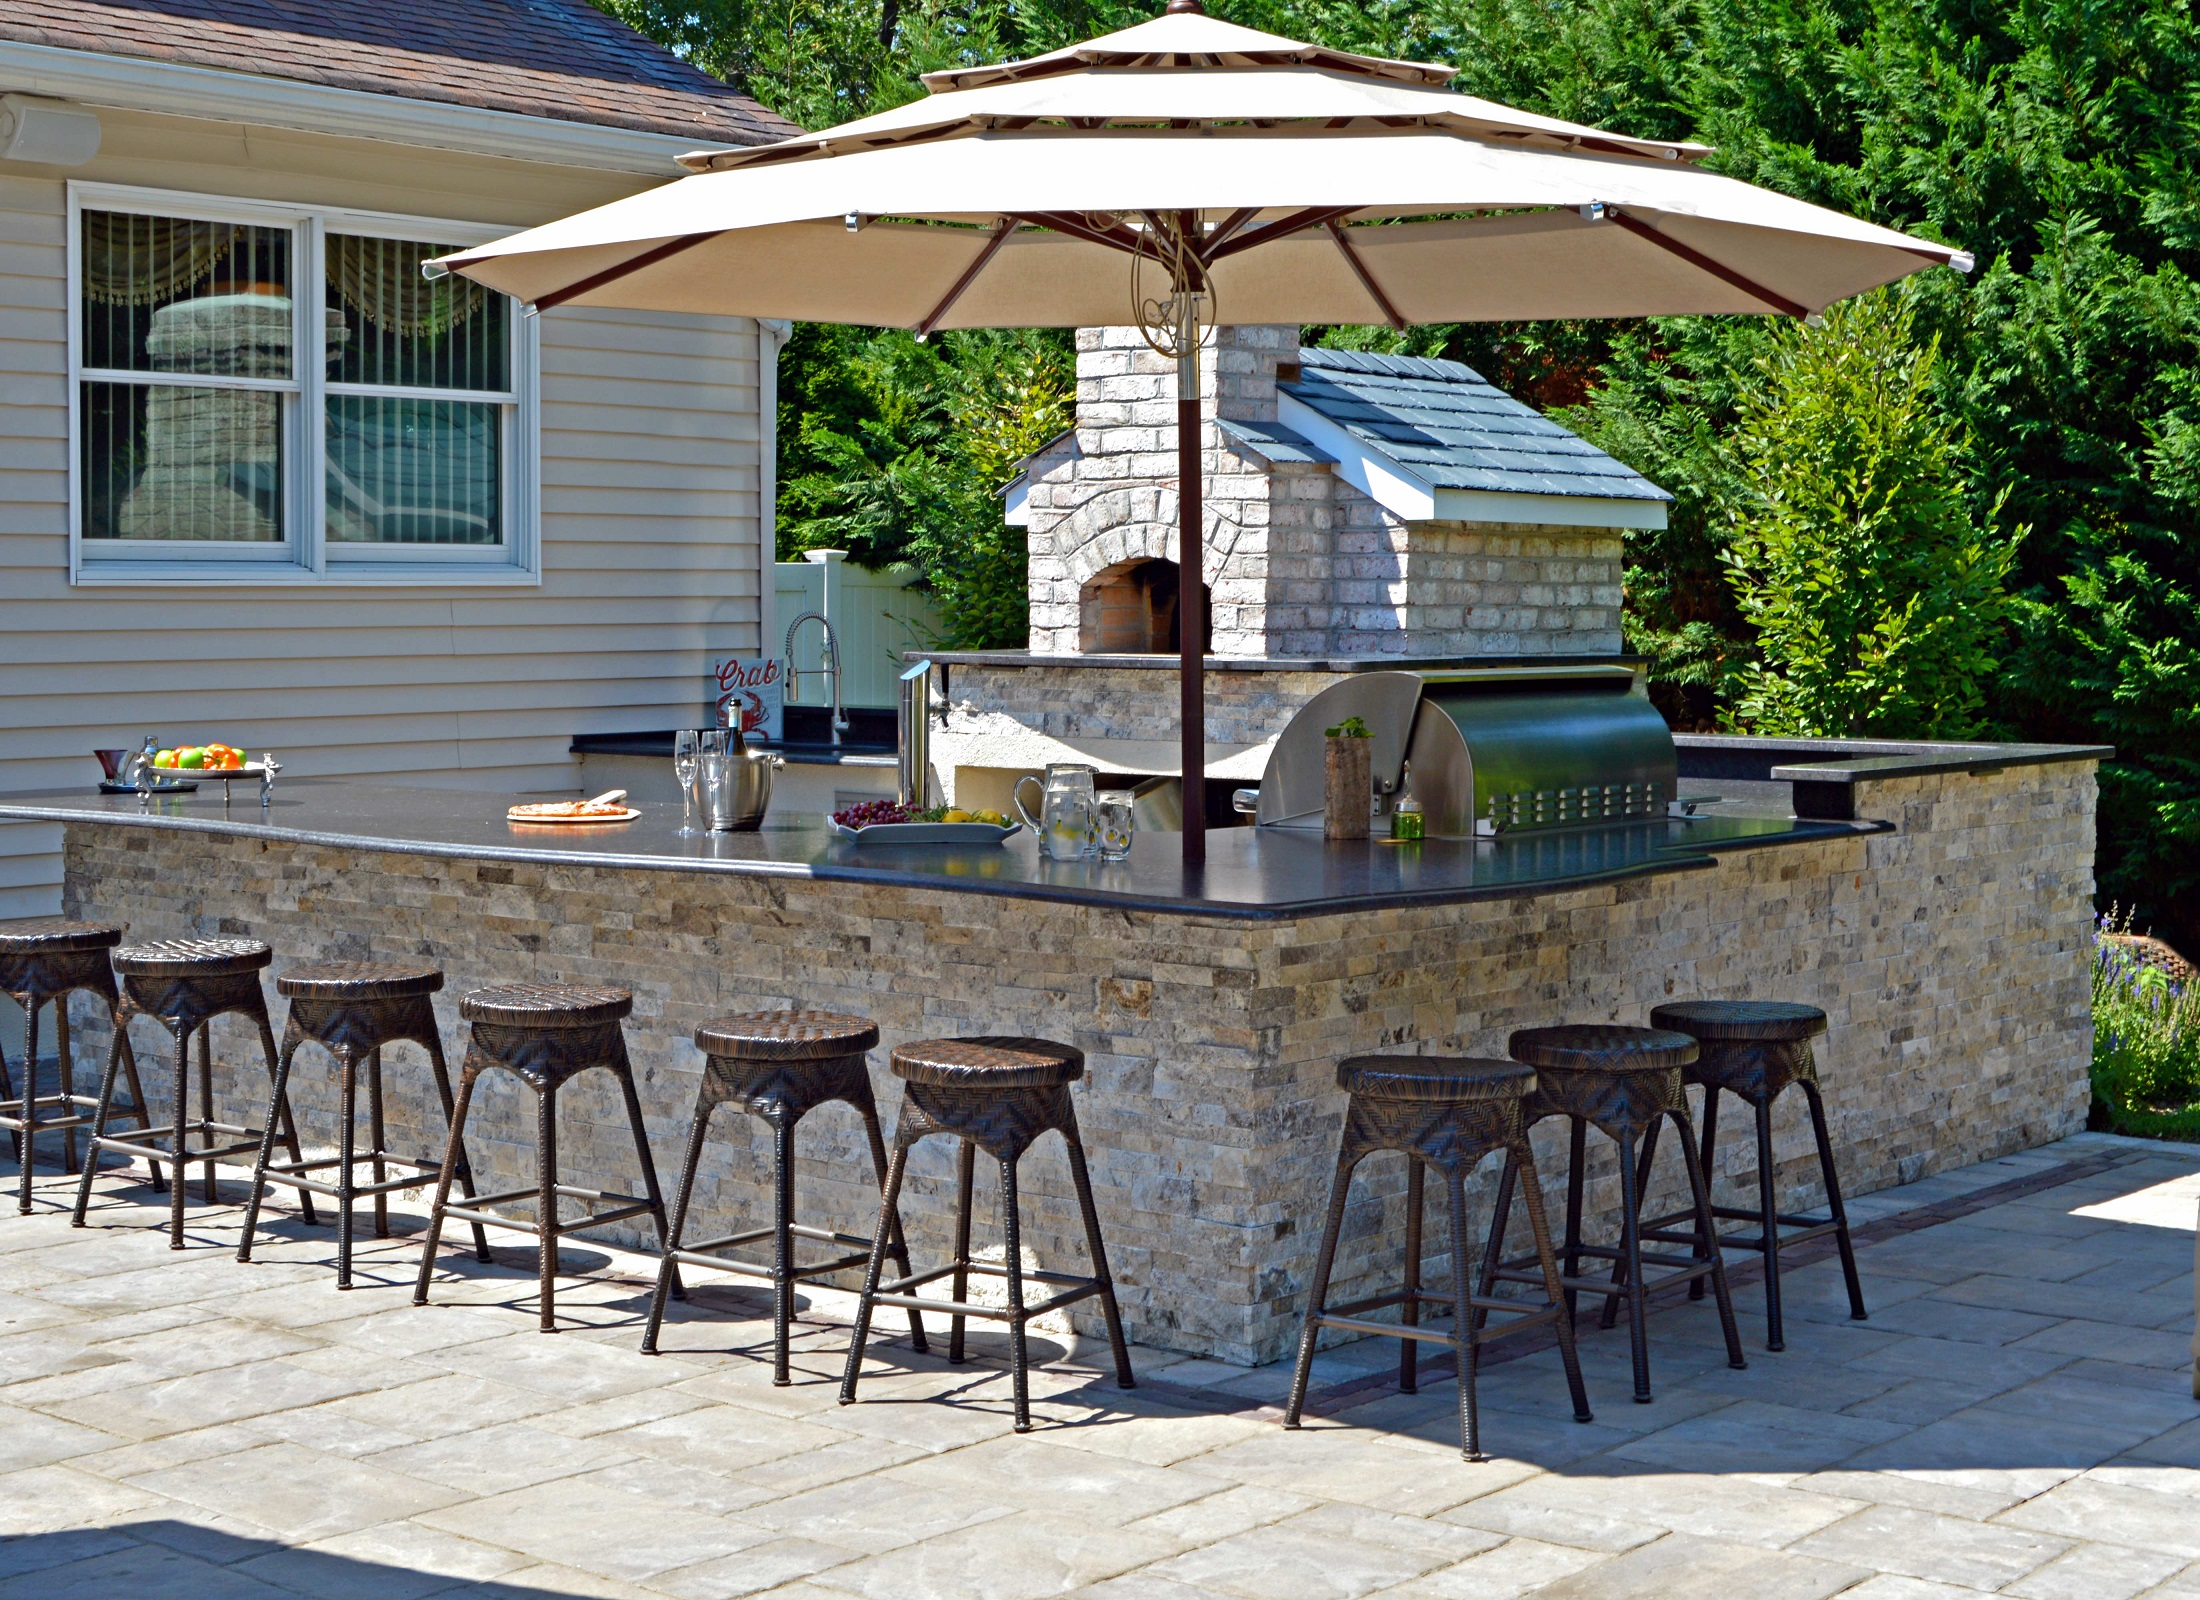 Outdoor kitchen landscape design in Hicksville, NY